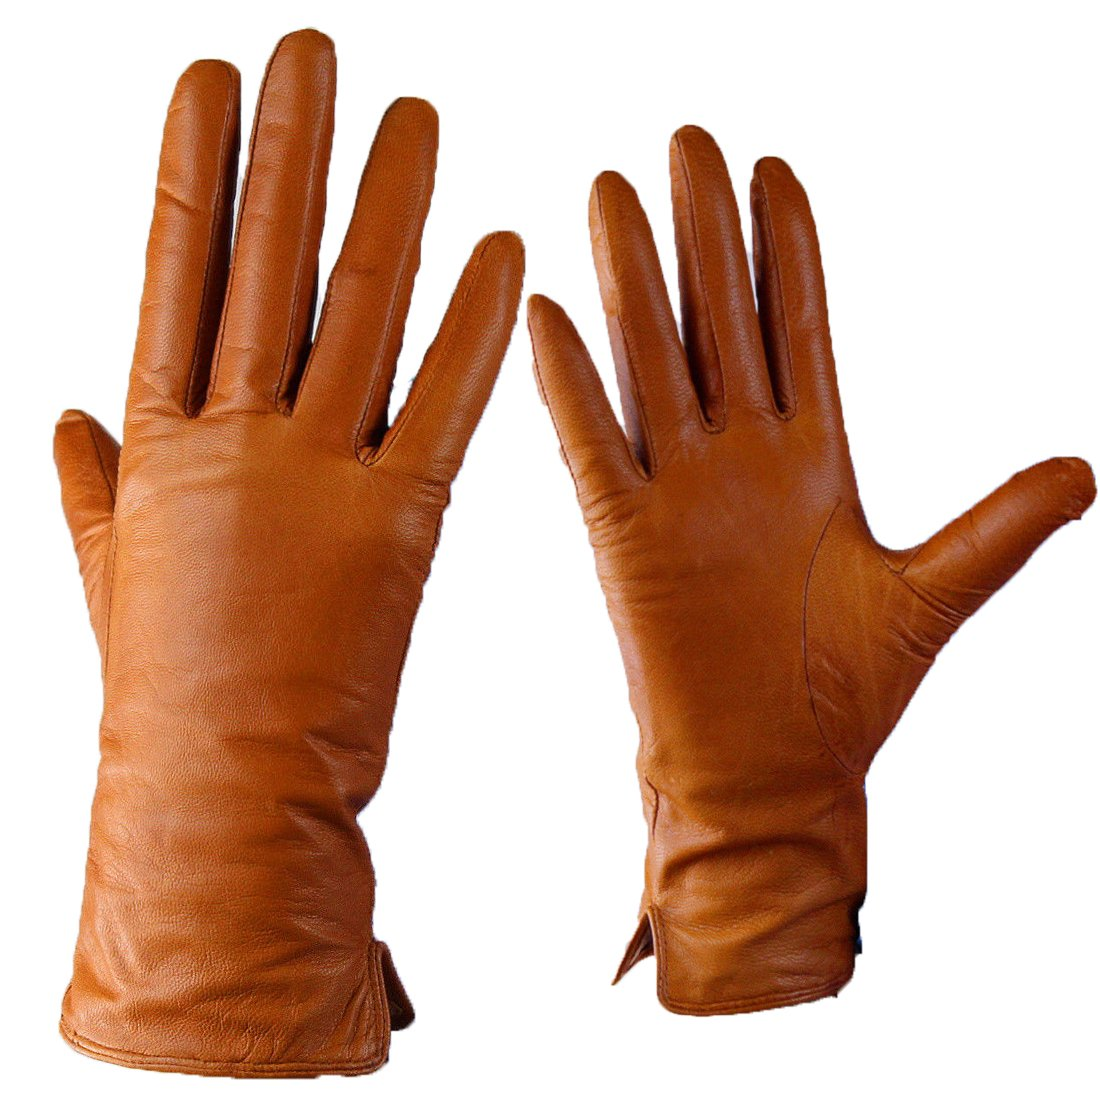 Real Leather Gloves Wrist Long Basic Genuine Lambskin Sheepskin Brown Tan Women (M)